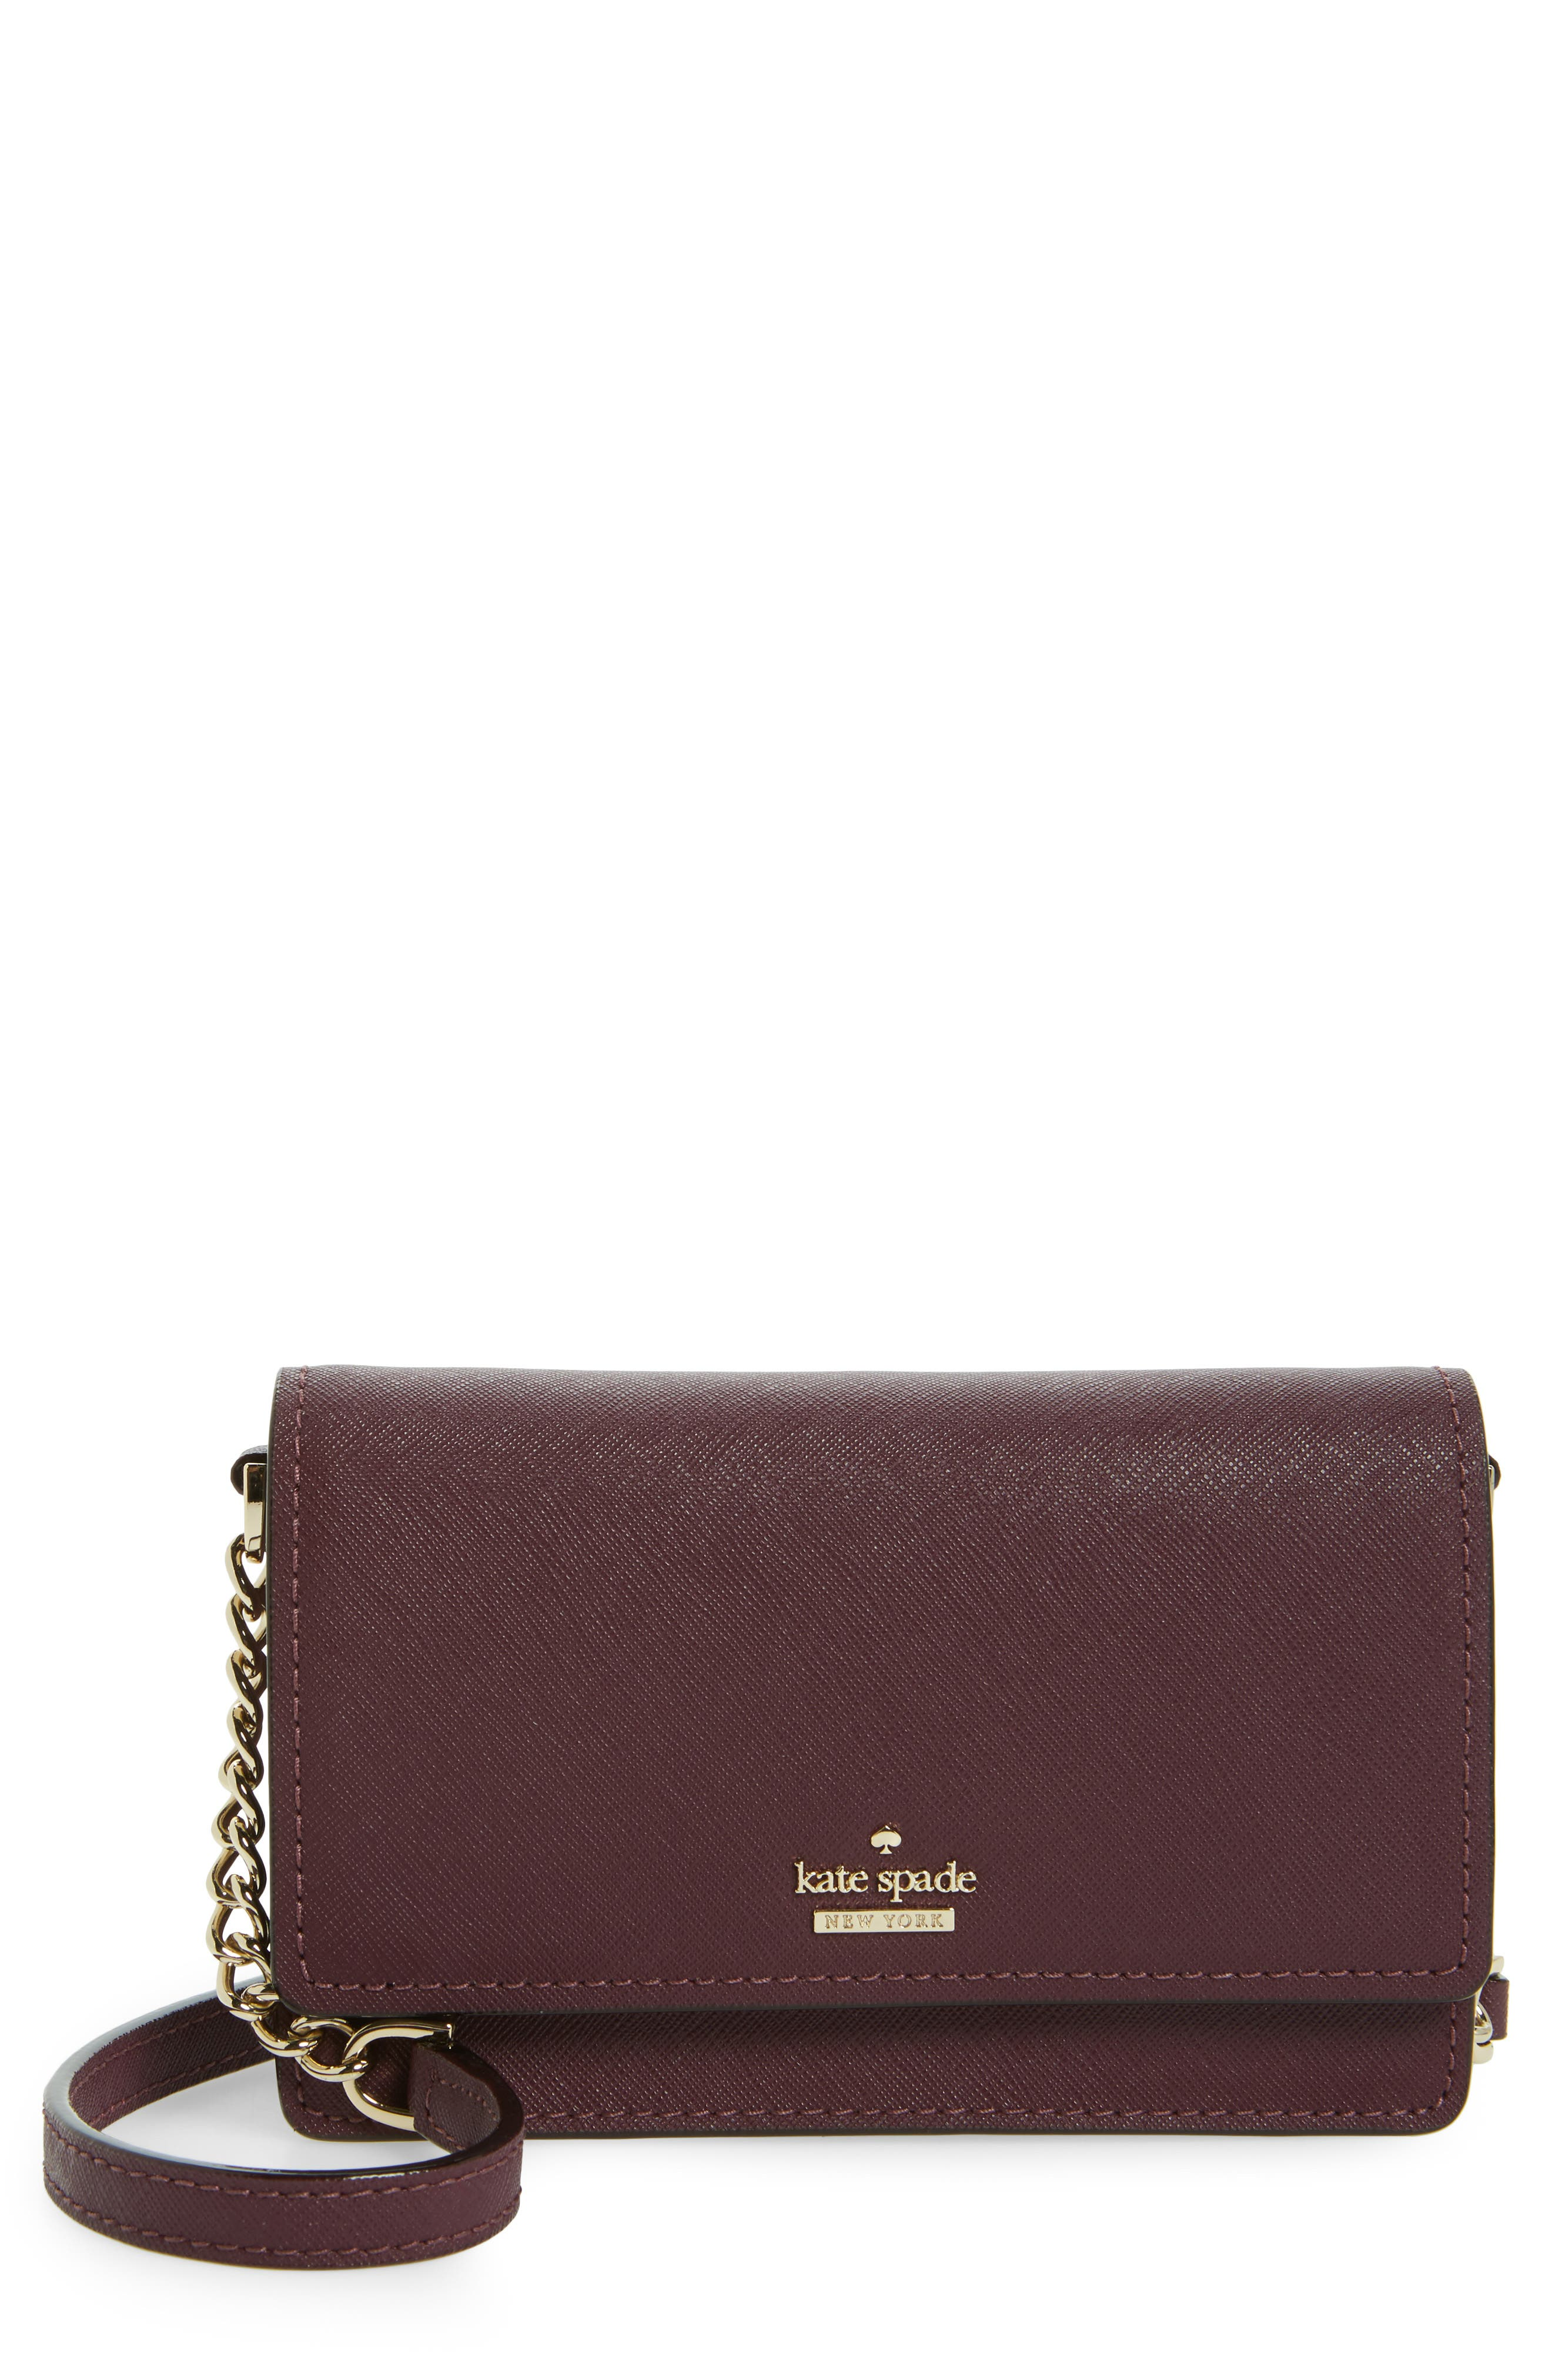 Main Image - kate spade new york cameron street - shreya leather crossbody bag